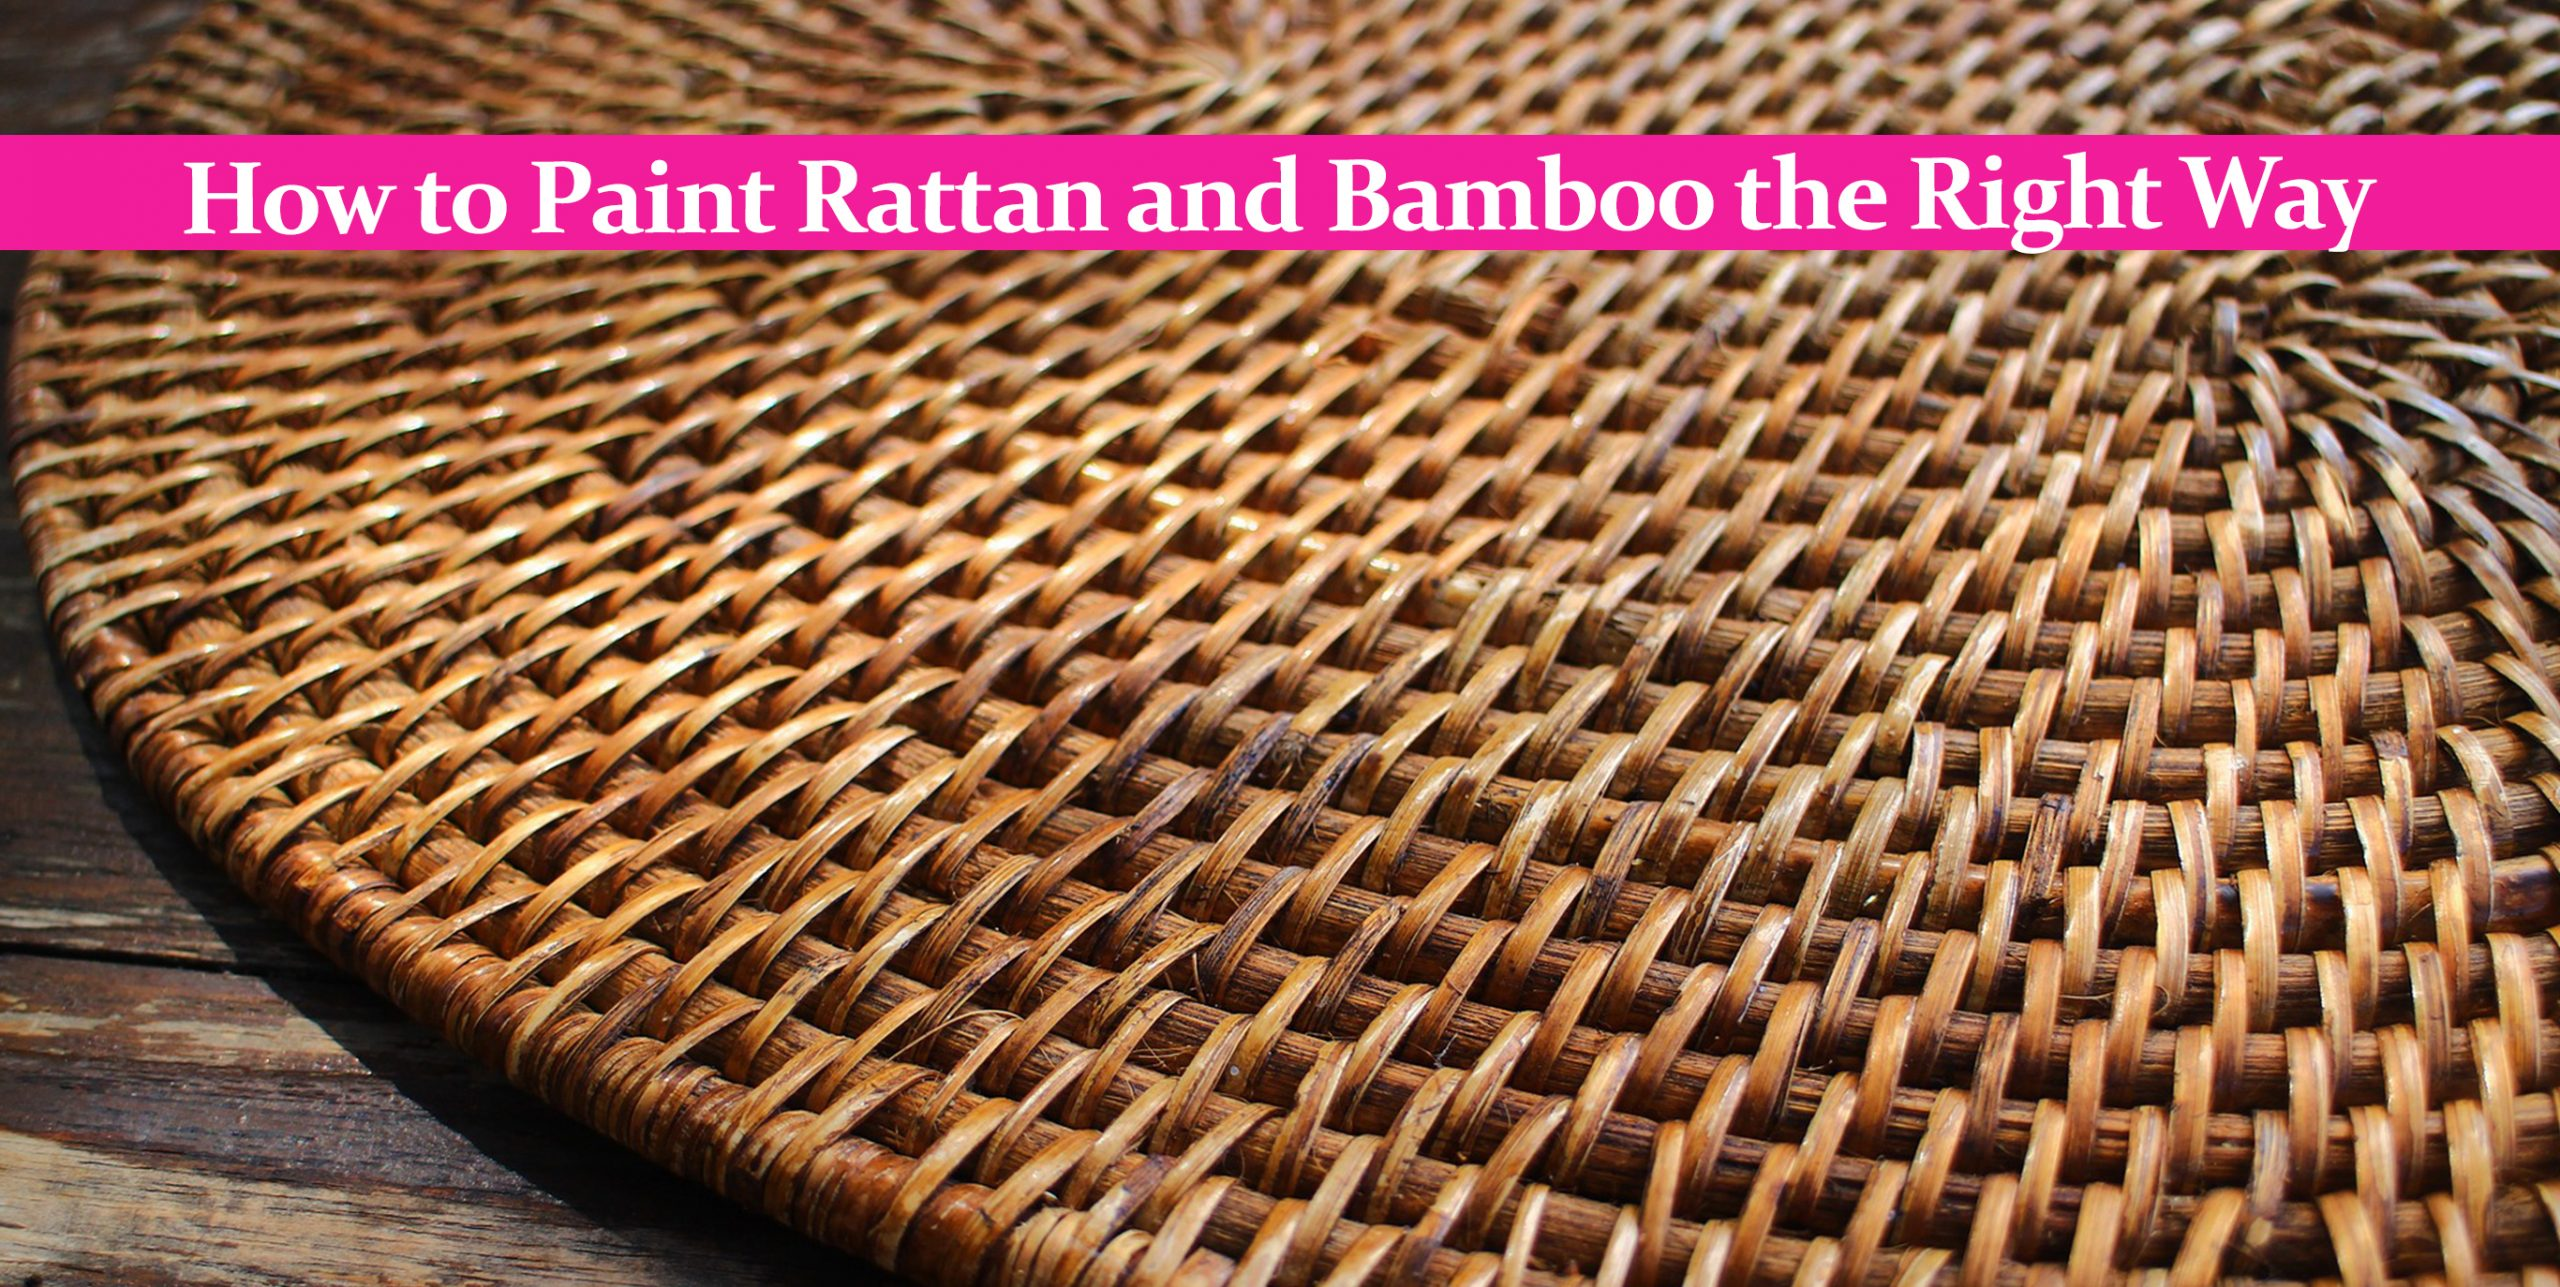 How to Paint Rattan and Bamboo the Right Way